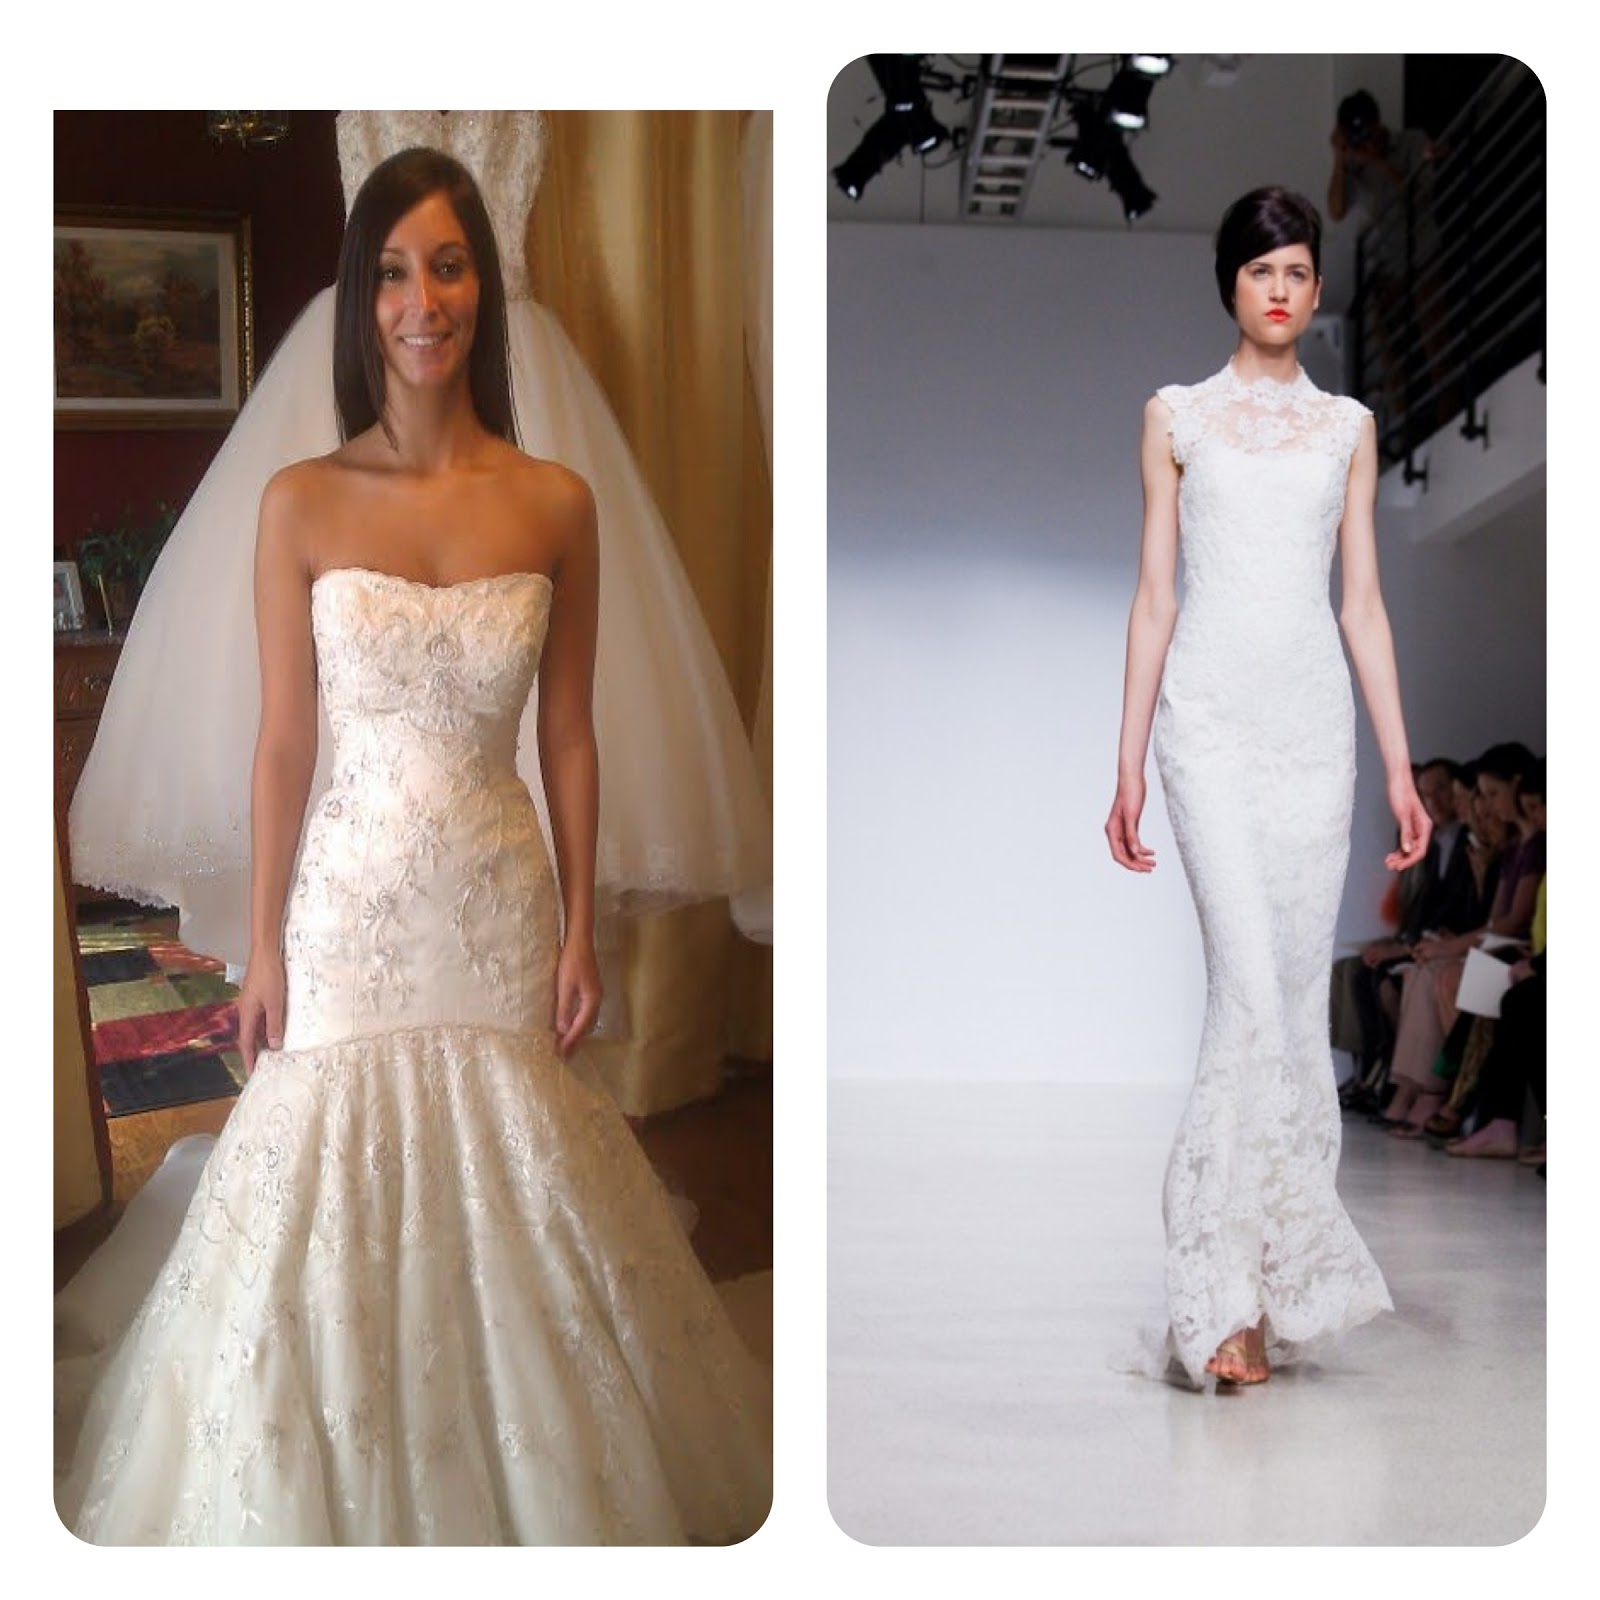 Simple 2nd Wedding Ideas: Efeford Weddings: Second Wedding Dress Ideas